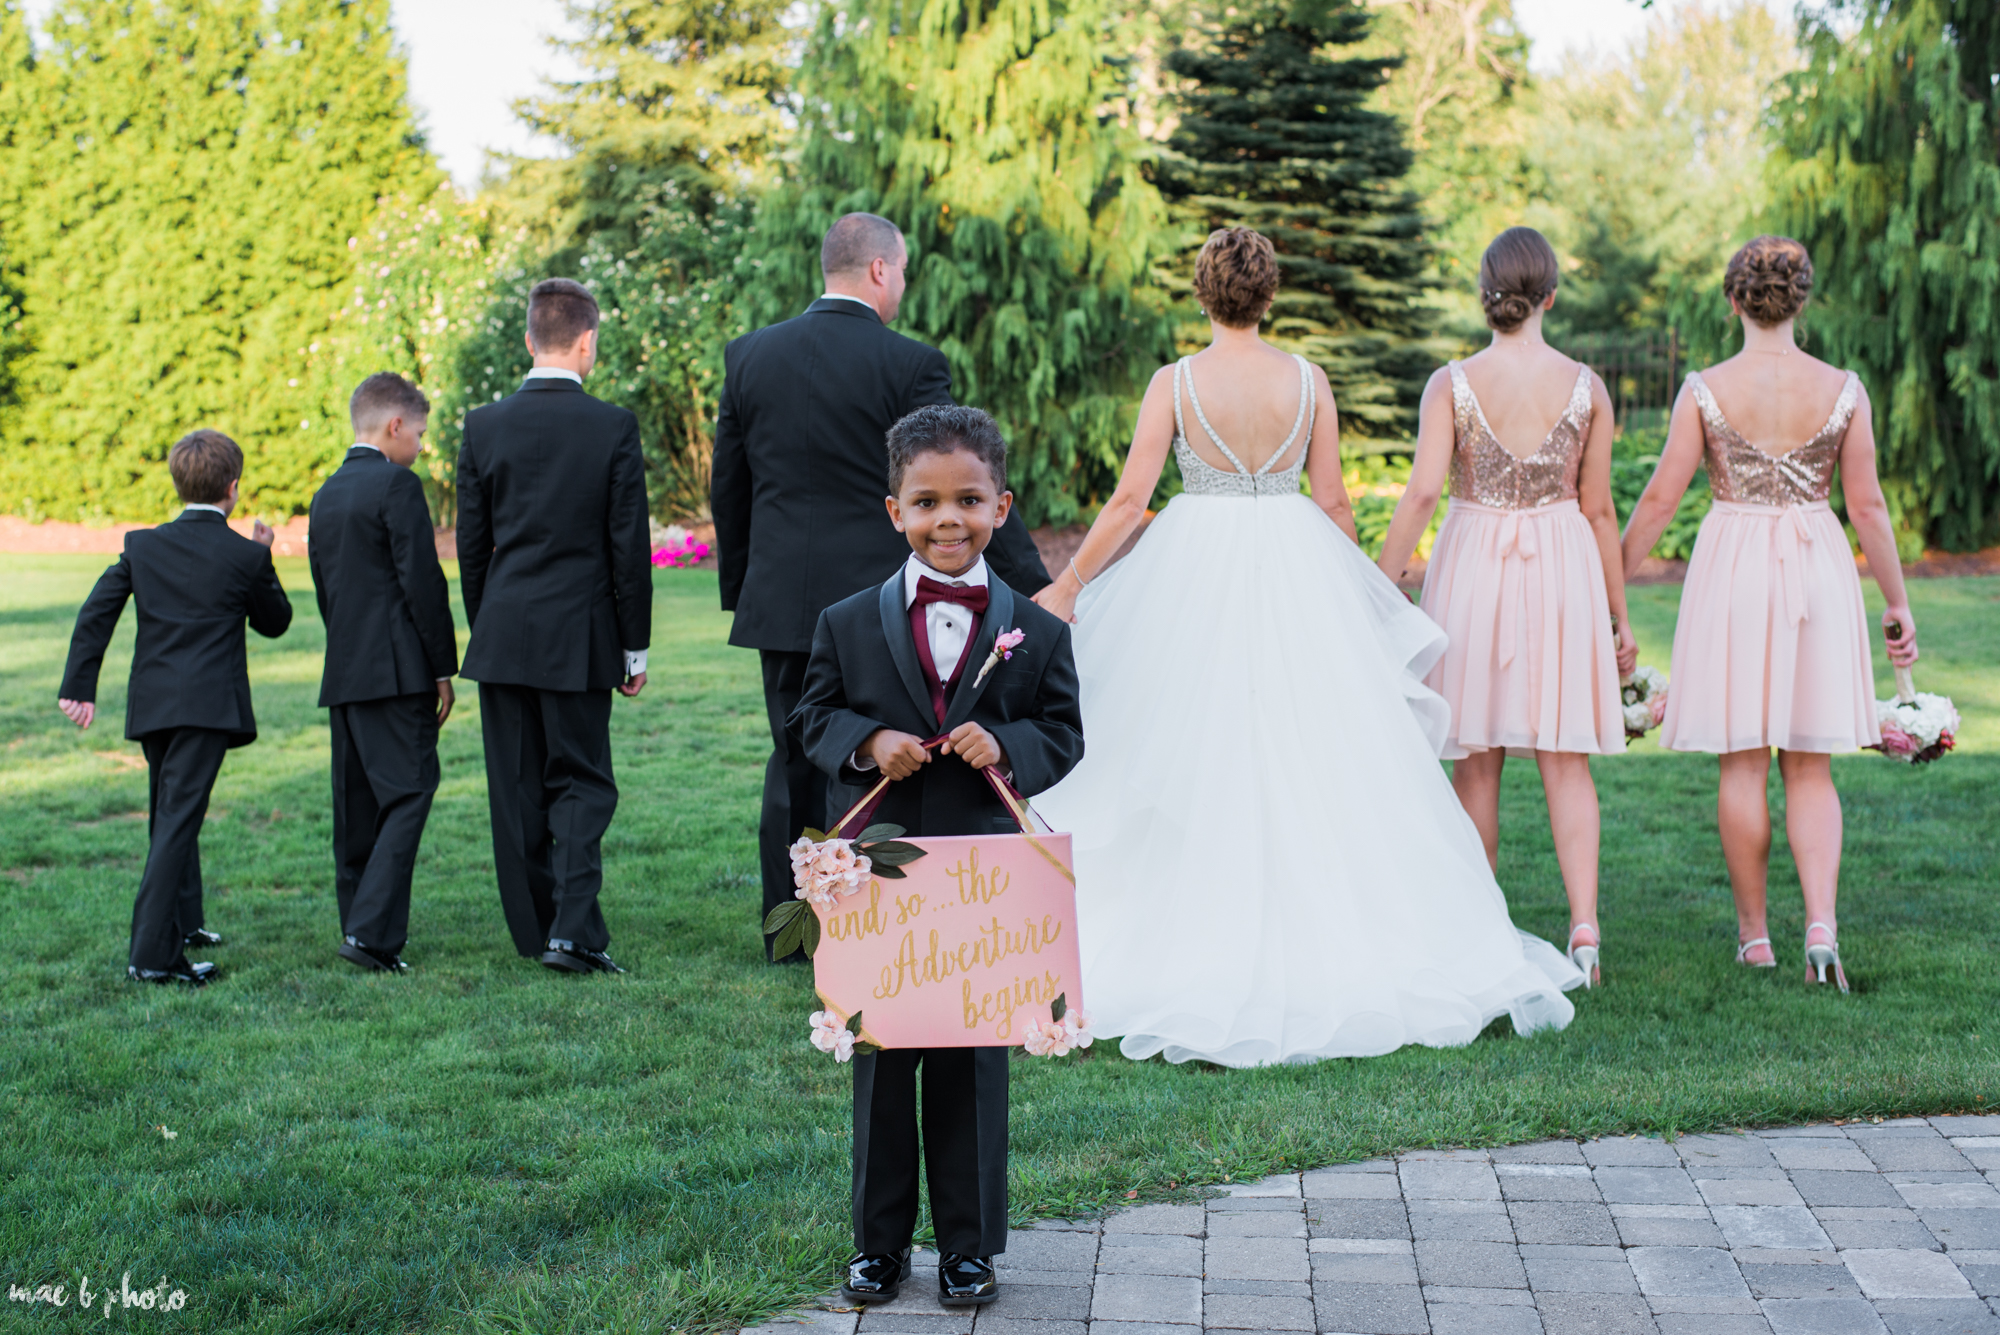 Mary Catherine & Chad's Elegant and Intimate Country Club Wedding at Squaw Creek in Youngstown Ohio by Mae B Photo-56.jpg